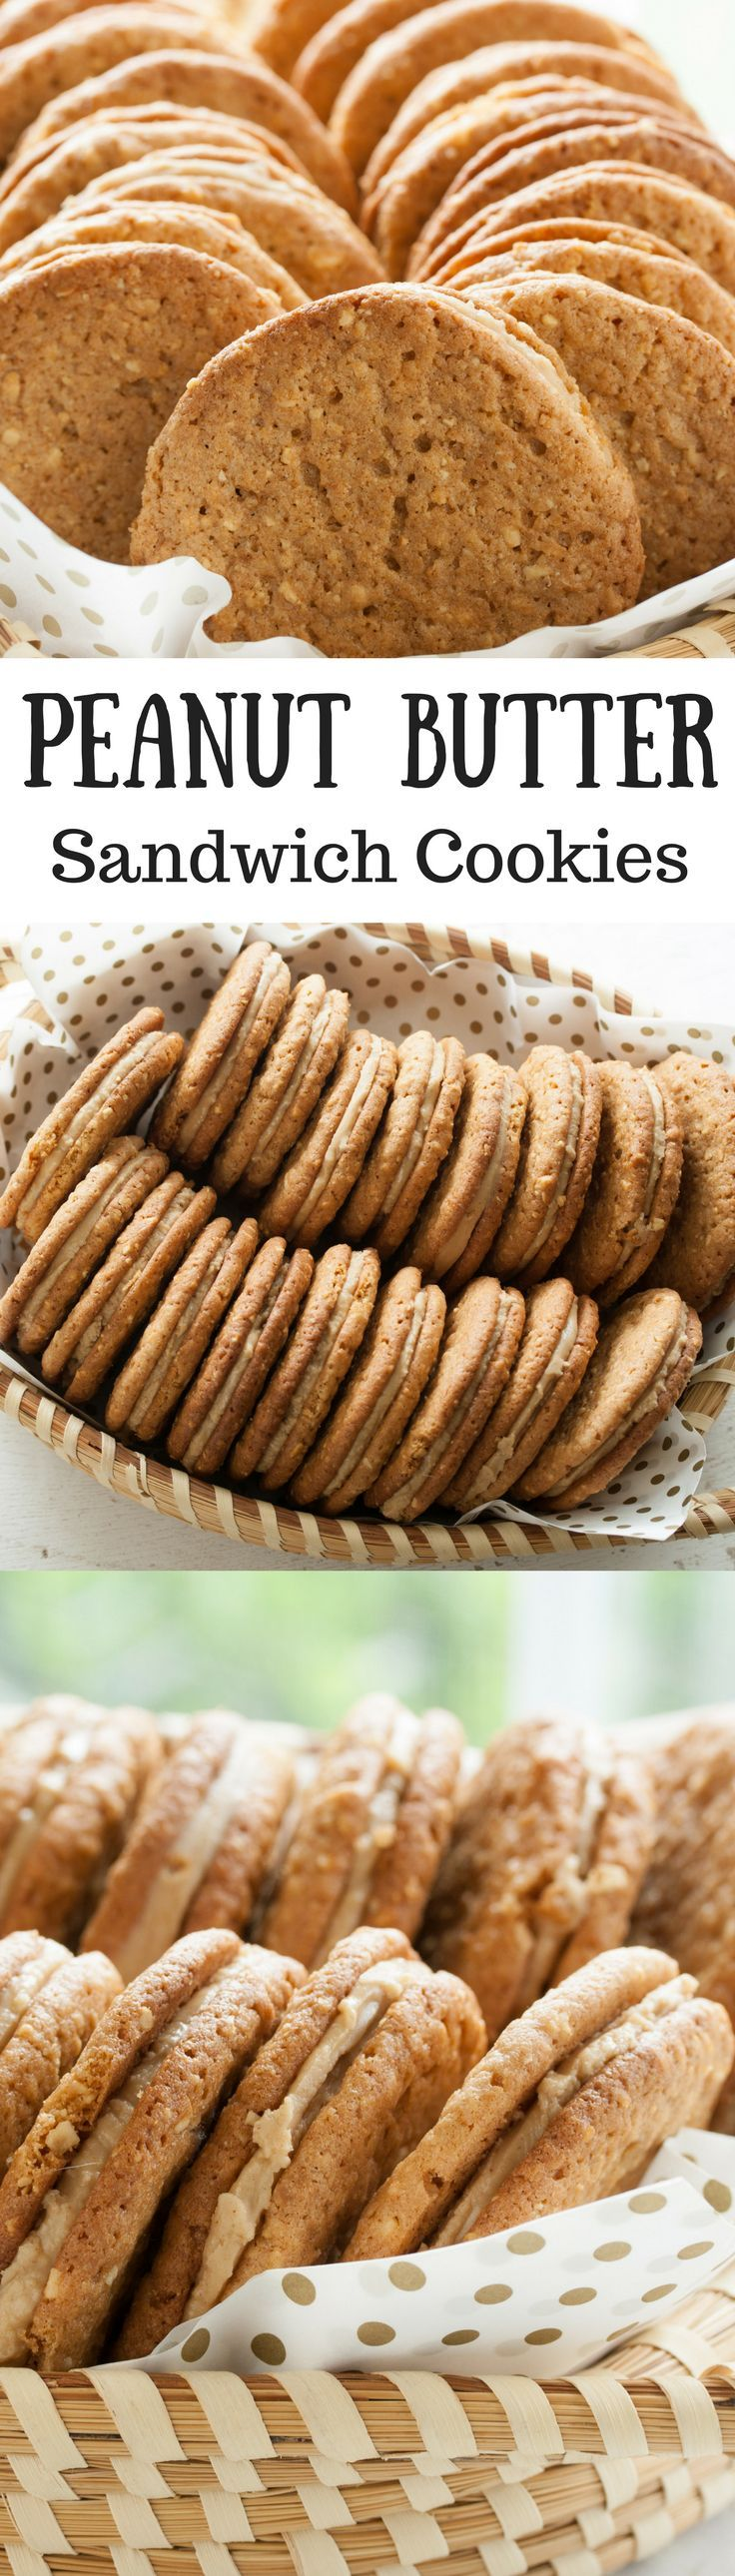 Peanut Butter Sandwich Cookies ~ What does it take to make a perfect peanut butter sandwich cookie? These cookies have just the right about of crispy crunch without crumbling, and a smooth, sweet, creamy filling that doesn't ooze out the sides when you take a bite. And these Peanut Butter Sandwich Cookies have a robust peanut flavor. It is perfectly delicious. www.savingdessert.com   peanut butter cookies   peanut butter sandwich cookies